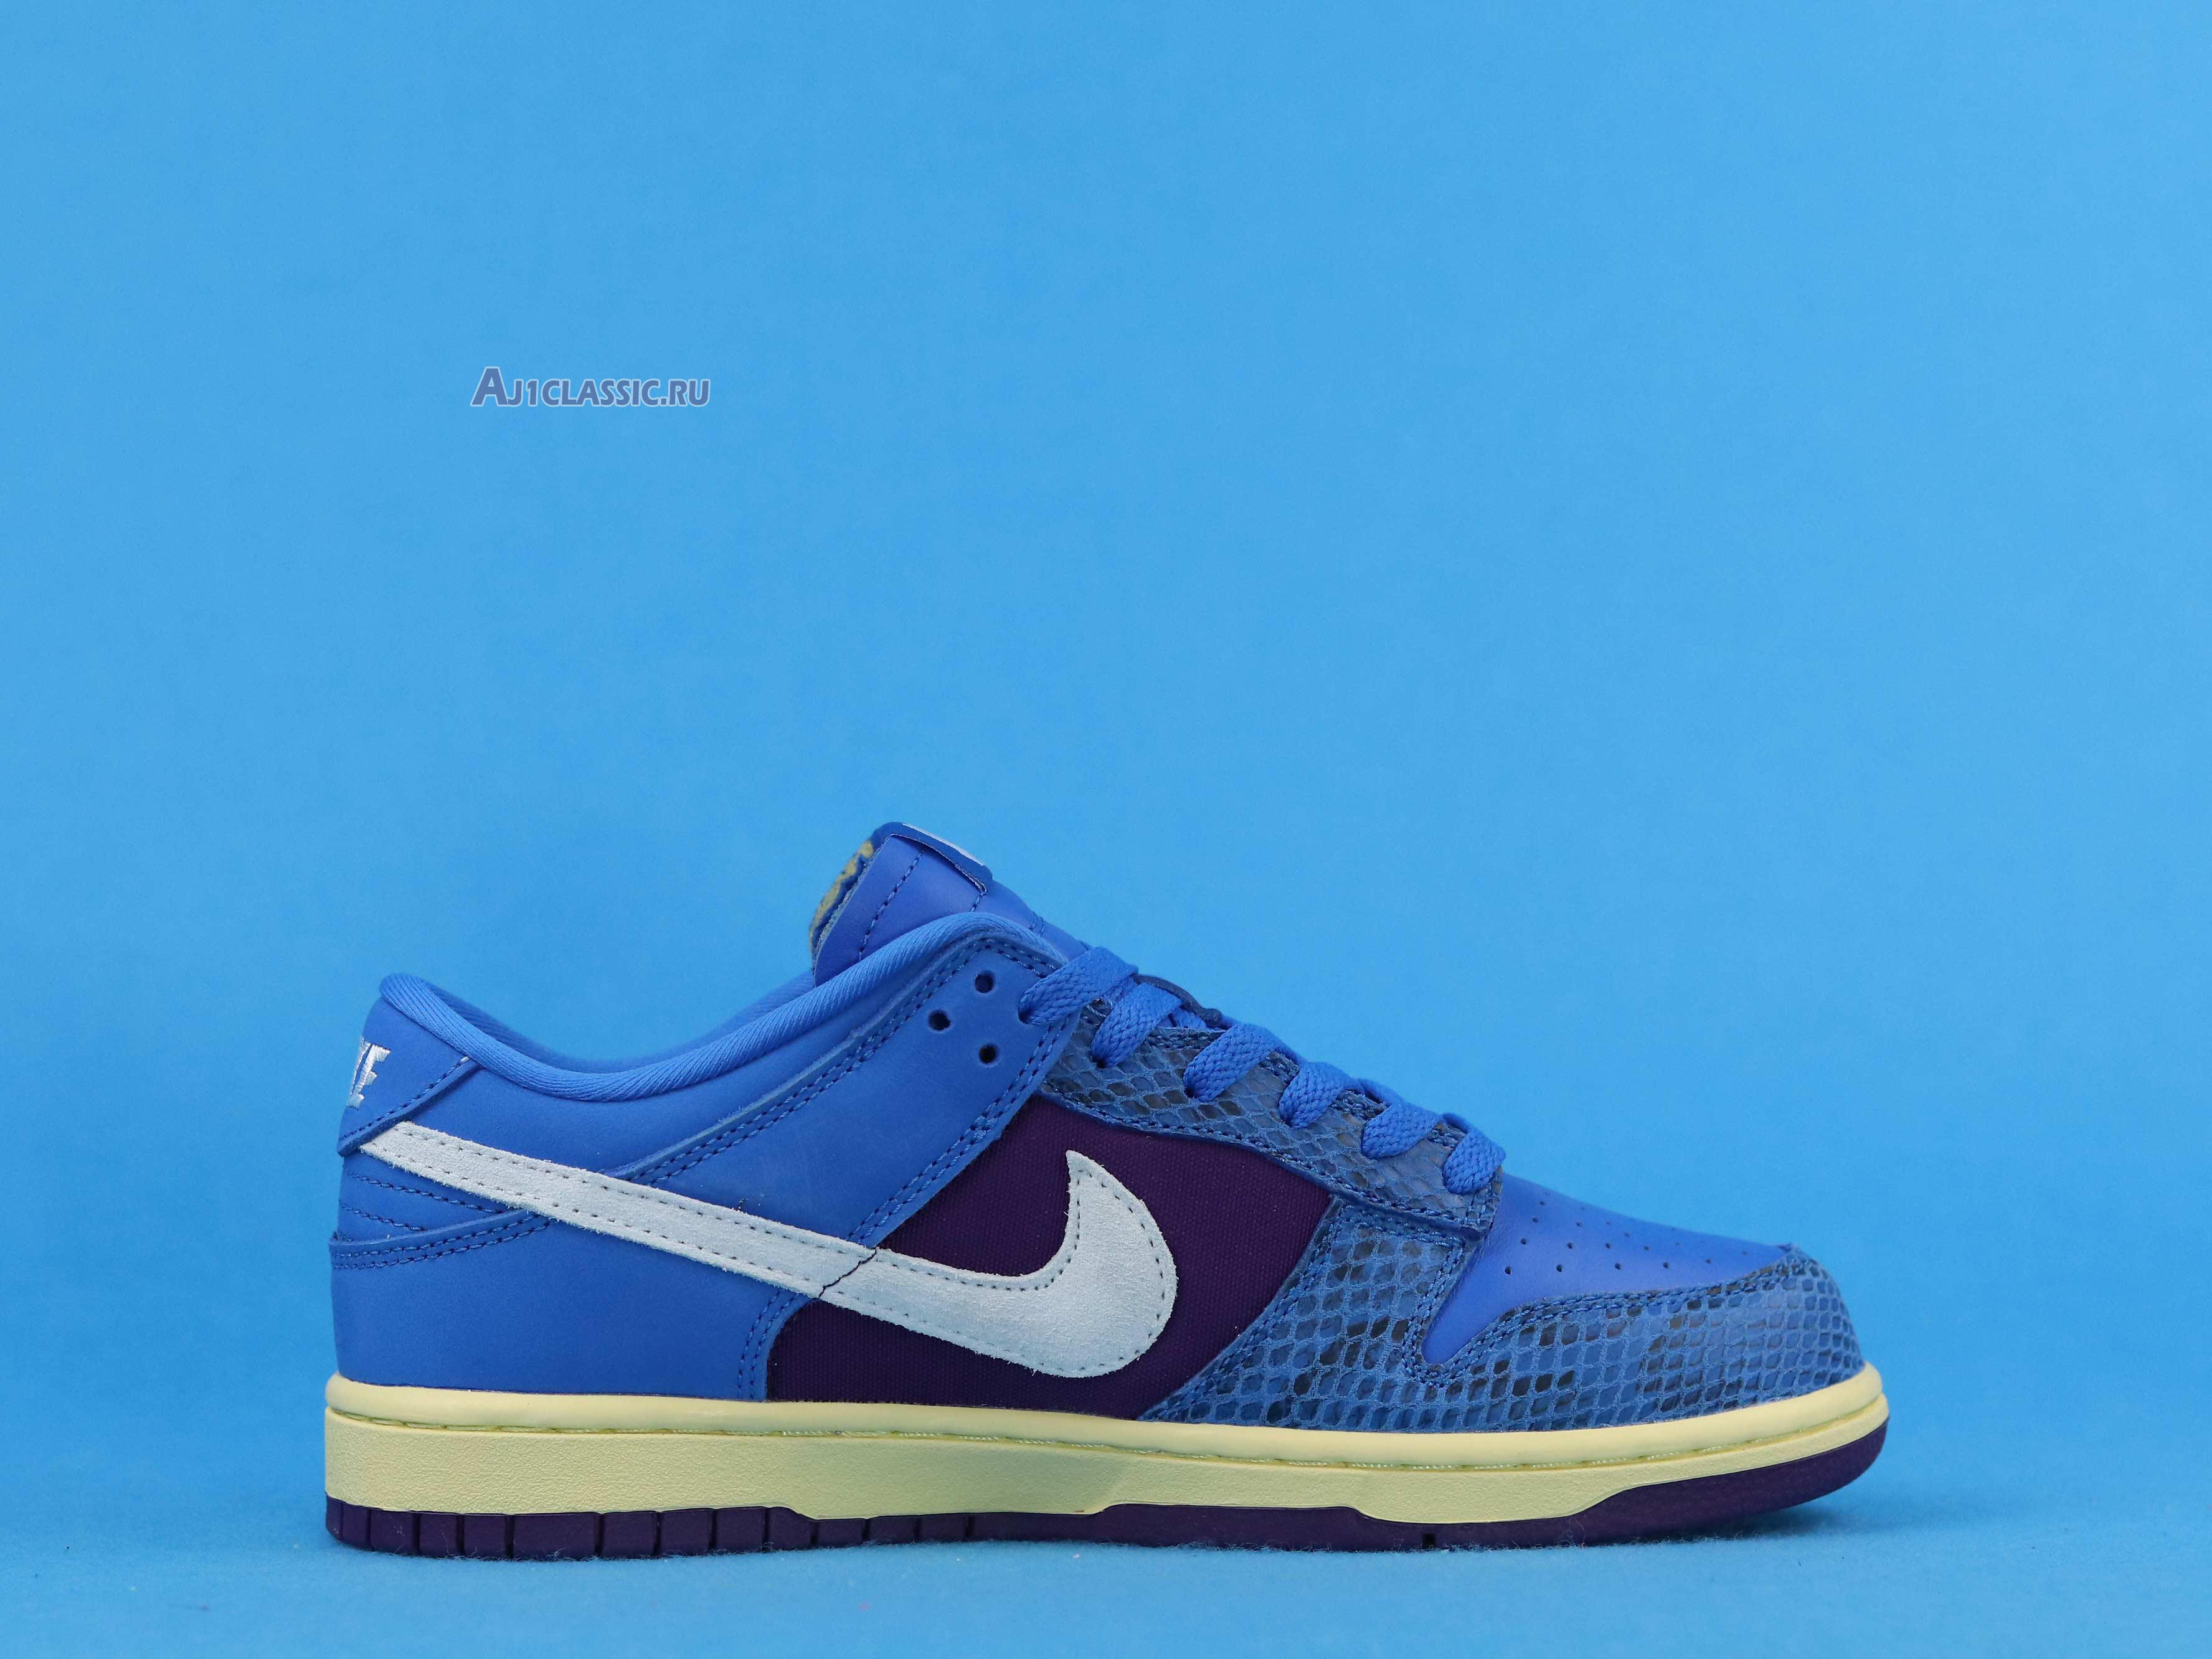 """Undefeated x Nike Dunk Low SP """"Dunk vs AF1"""" DH6508-400"""